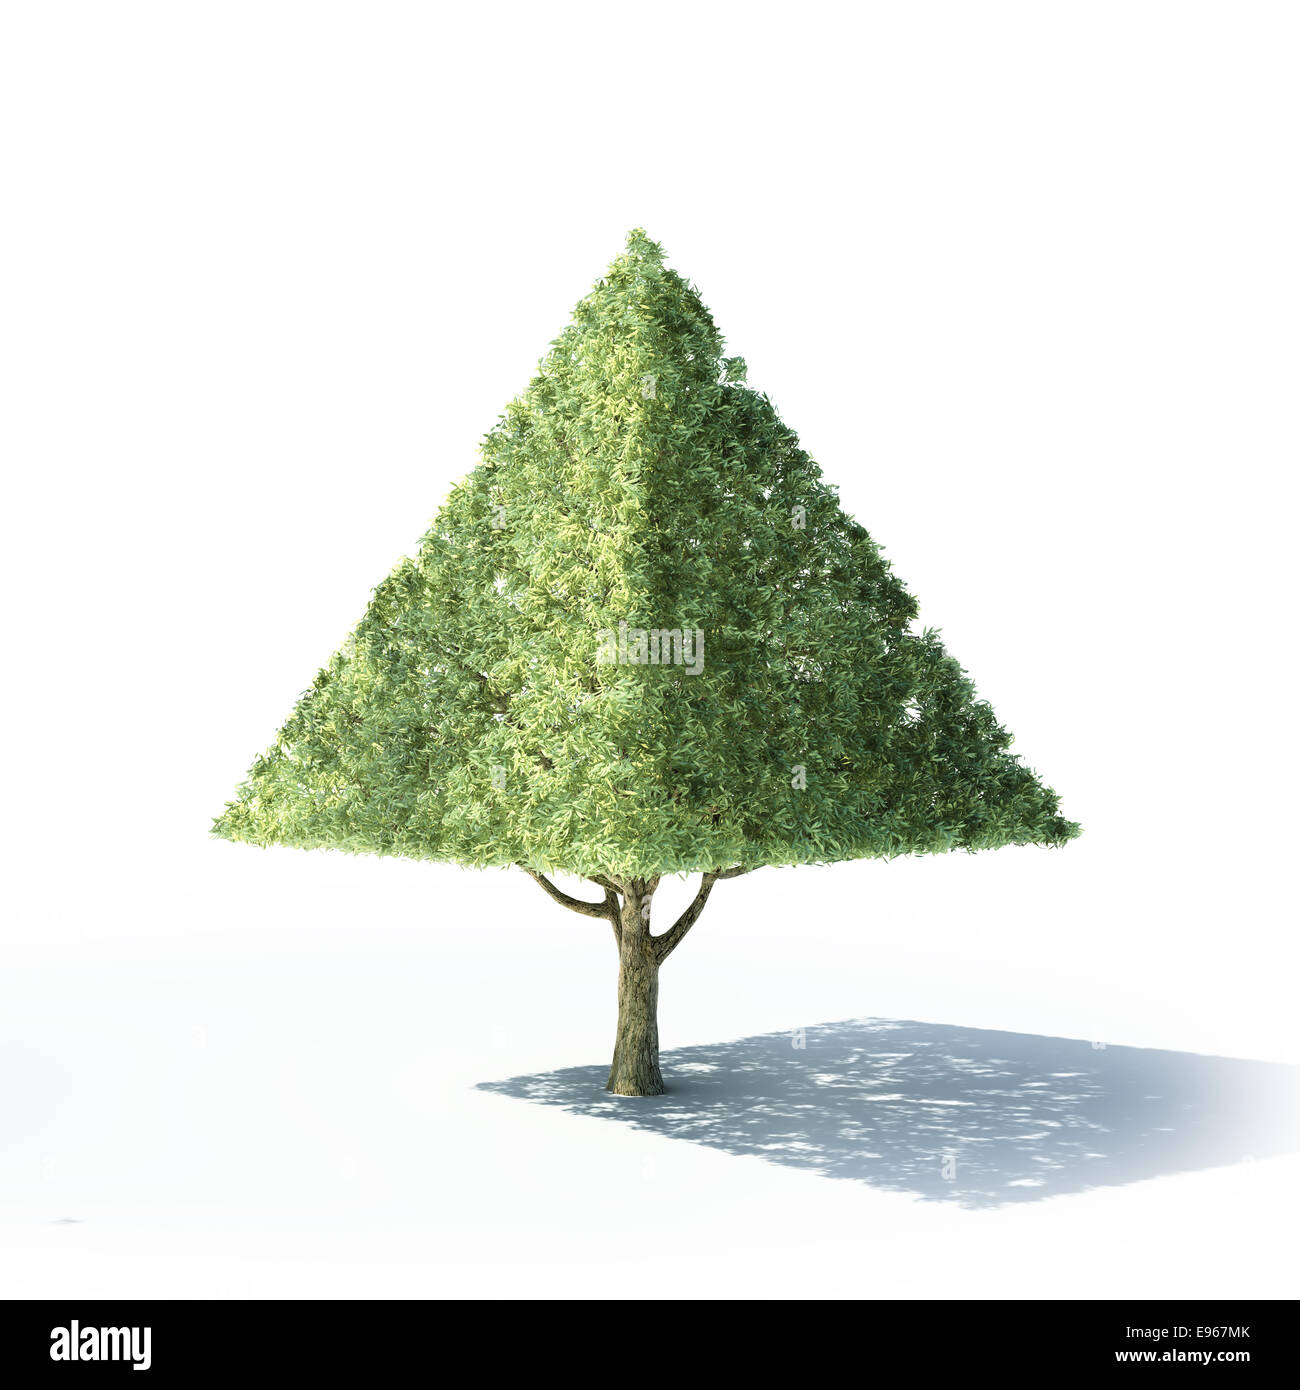 Pyramid shaped tree on a white background - Stock Image